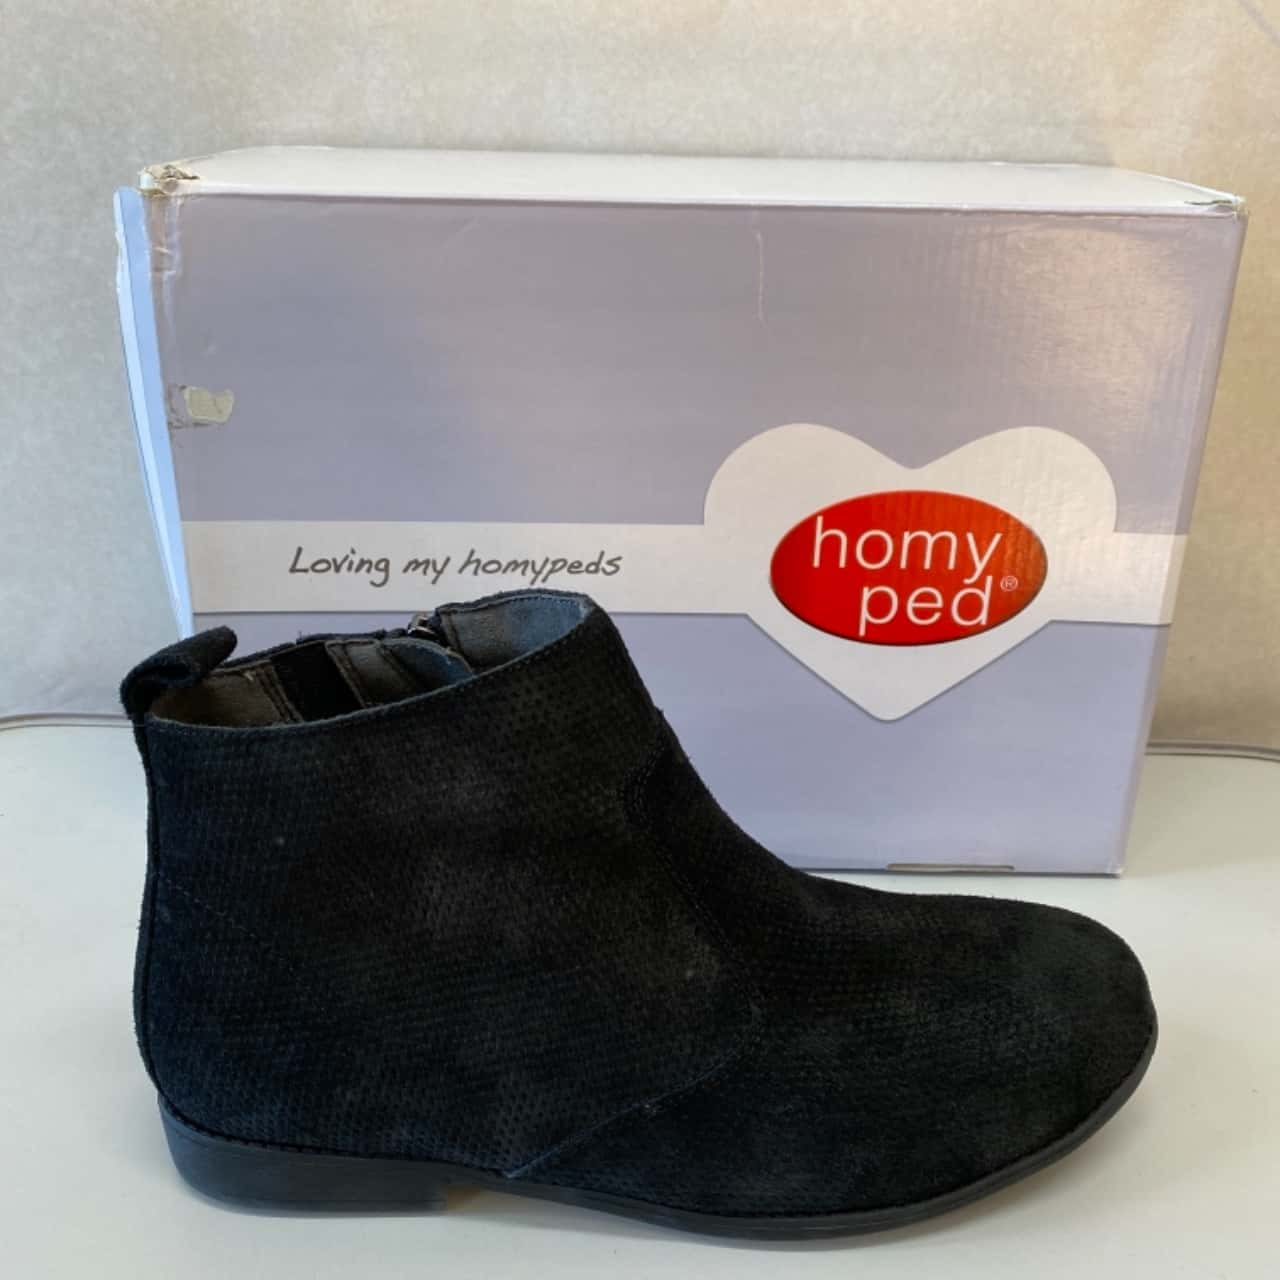 Womens Homy Ped Size 8 Black Suede Leather Ankle Boot  - New in Box